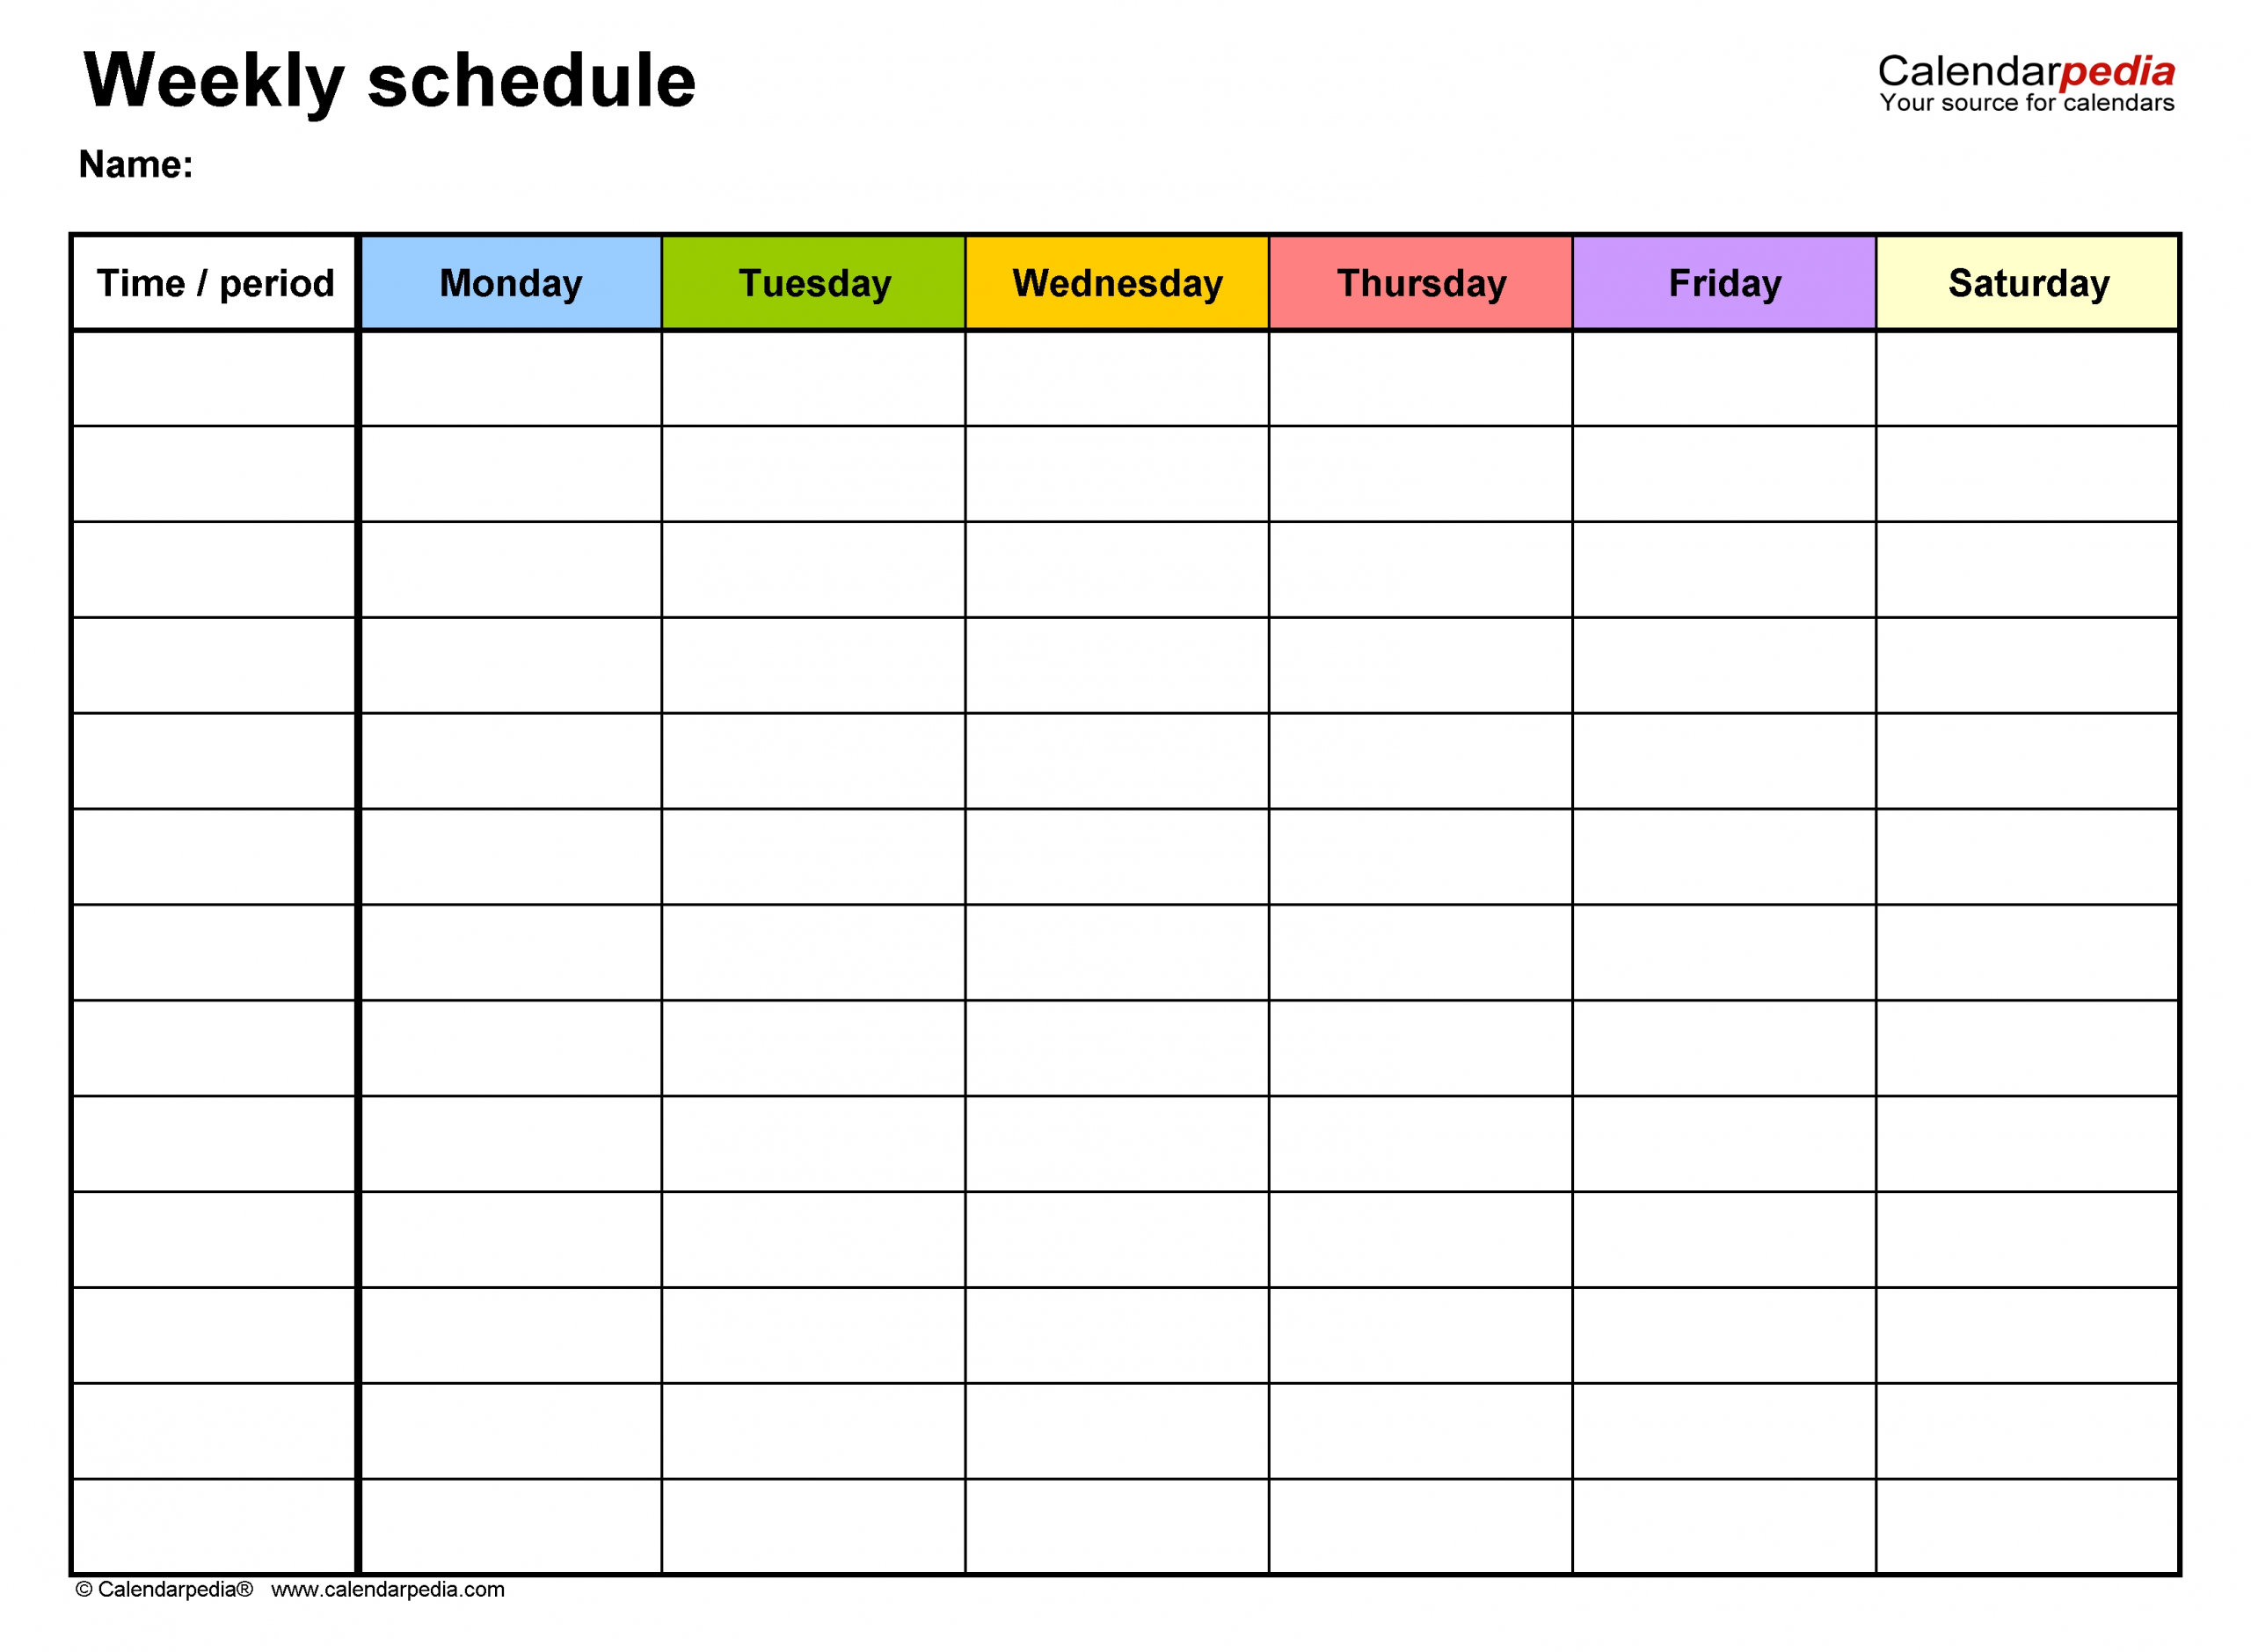 Free Weekly Schedule Templates For Excel - 18 Templates  Excel Weekly Calendar Template